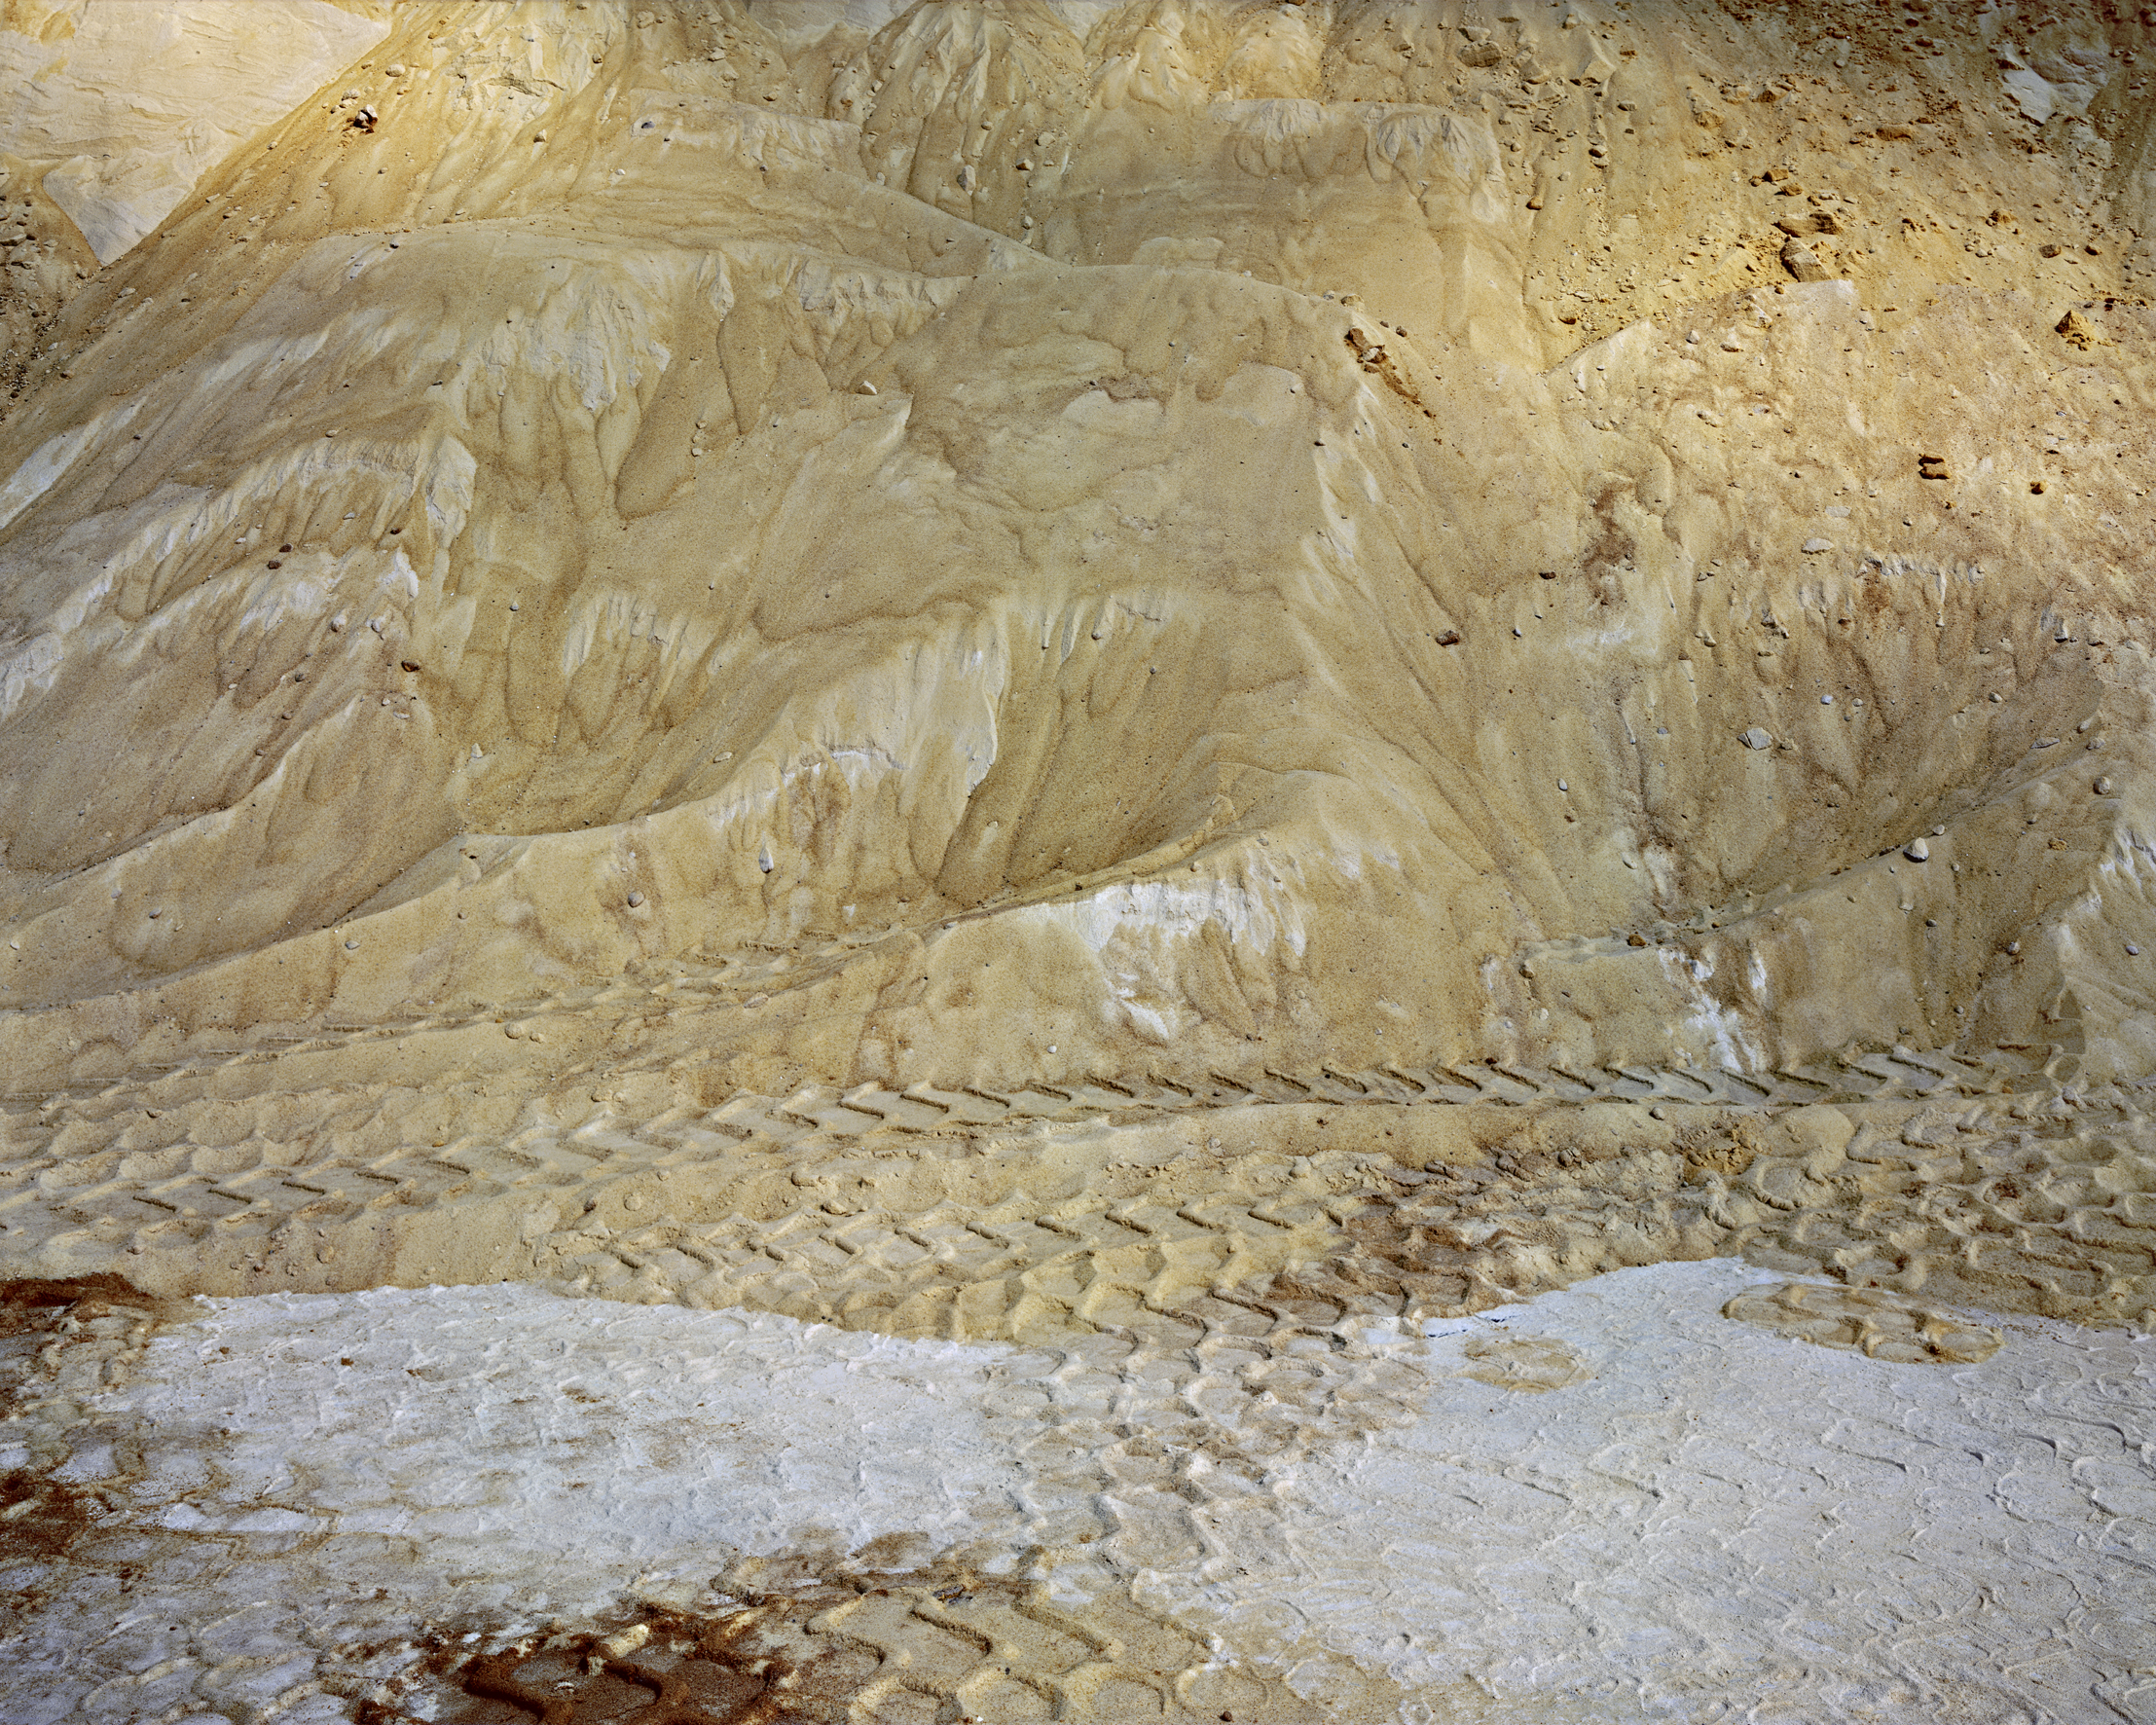 Sugar mounds in a warehouse with vehicle tracks on it combining to form a scale like pattern